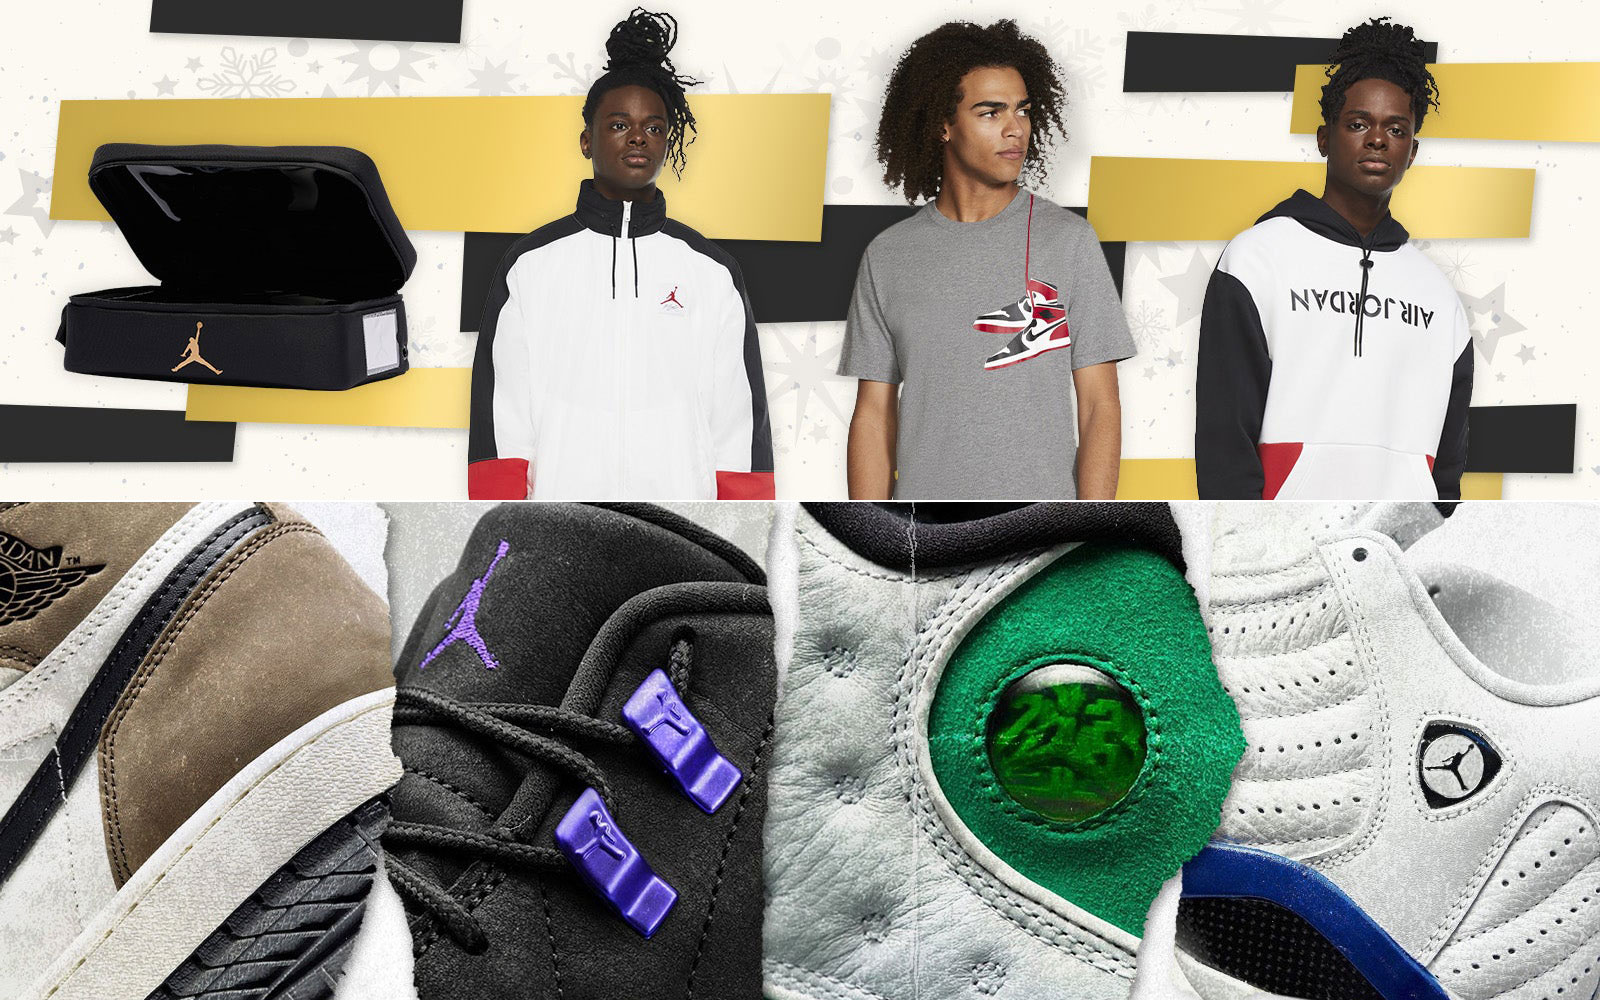 black-friday-2020-deals-jordan-shoes-clothing